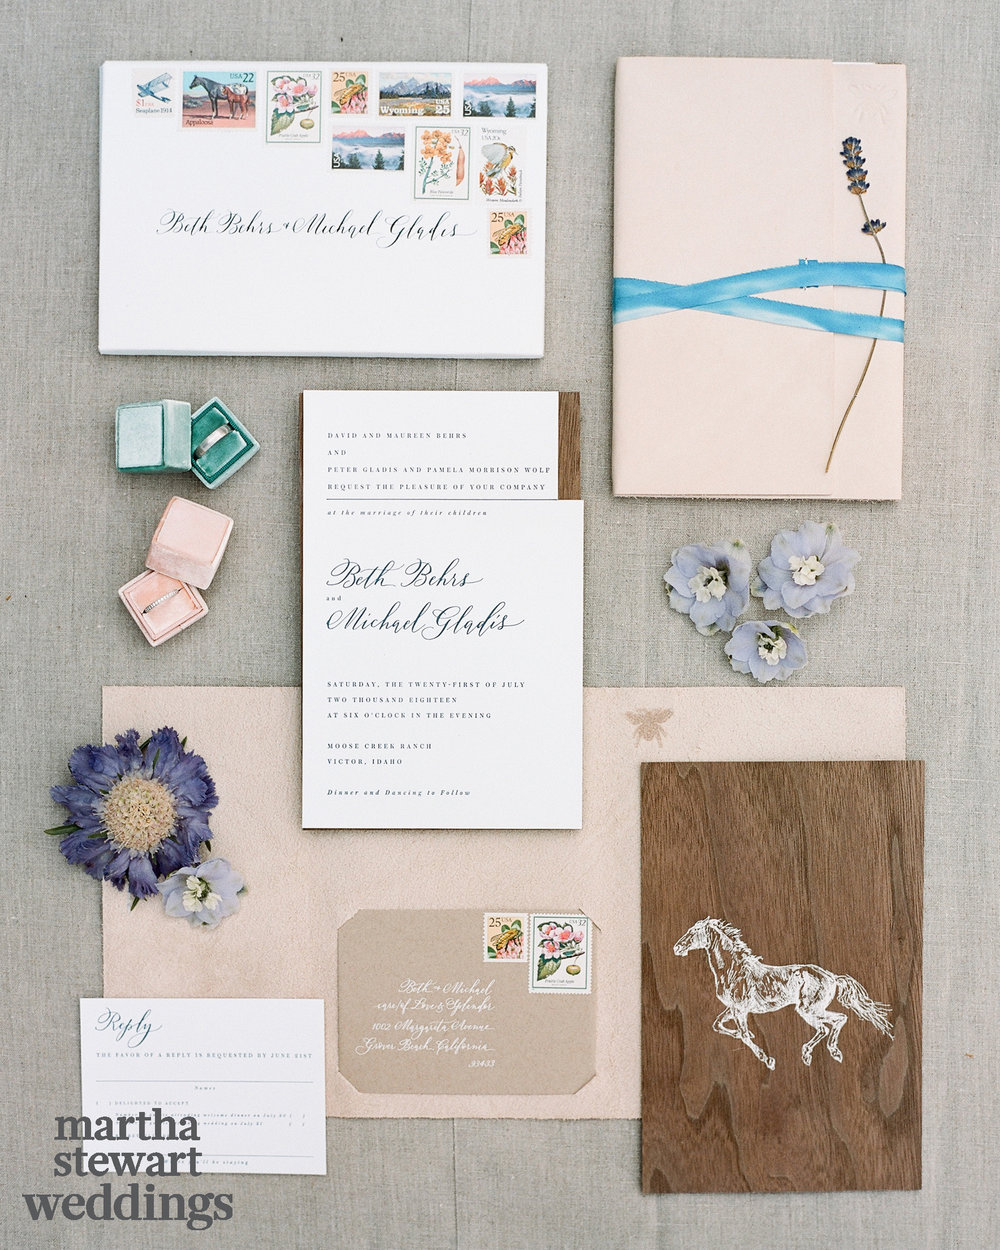 Invitation Suite by Amber Moon Design, Calligraphy by Anne Robin, Illustration by Karina Puente rings in Mrs. Box